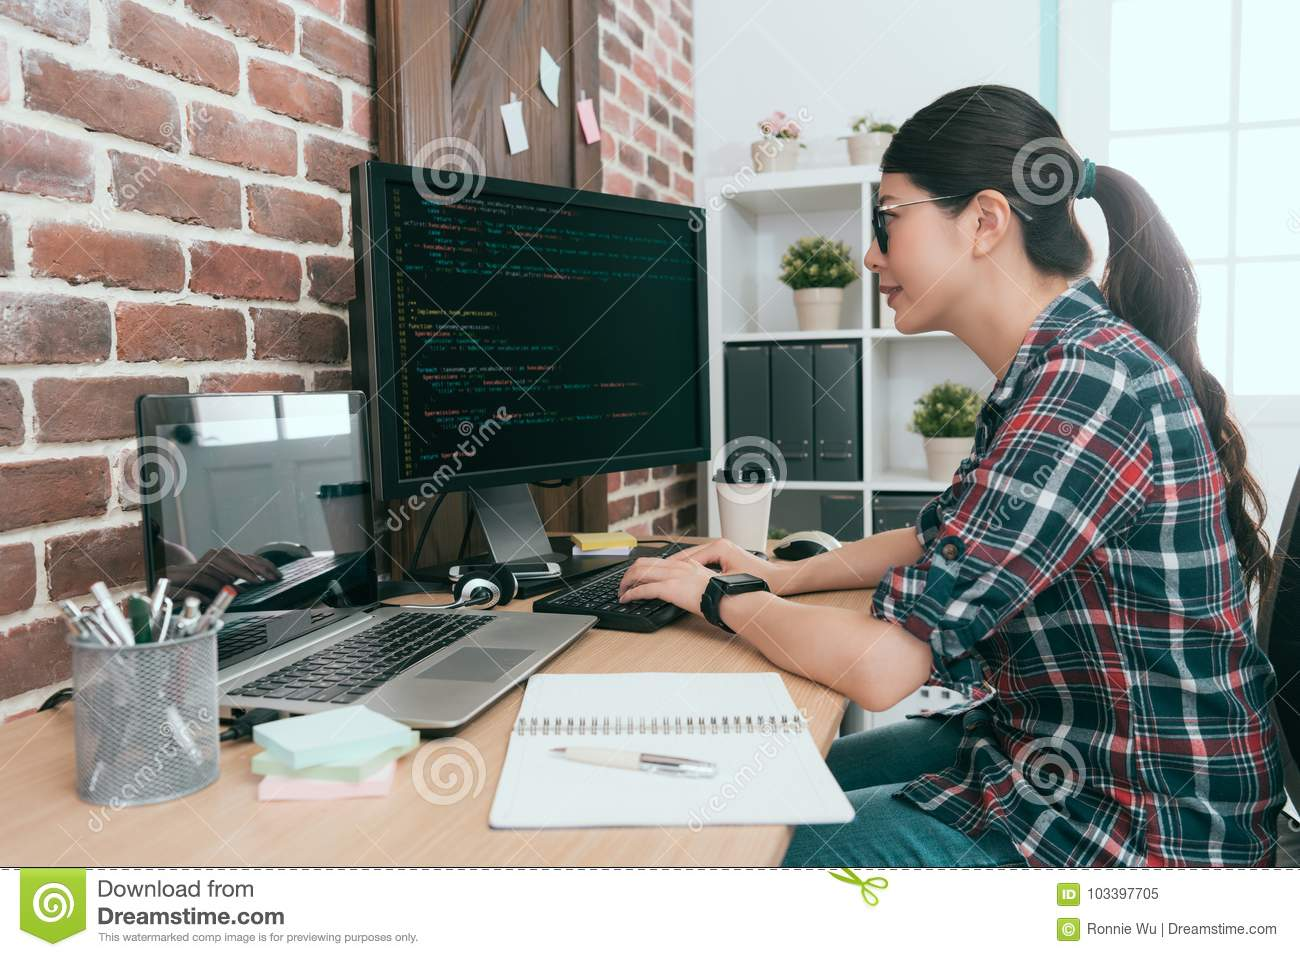 Beauty smiling female programmer using computer